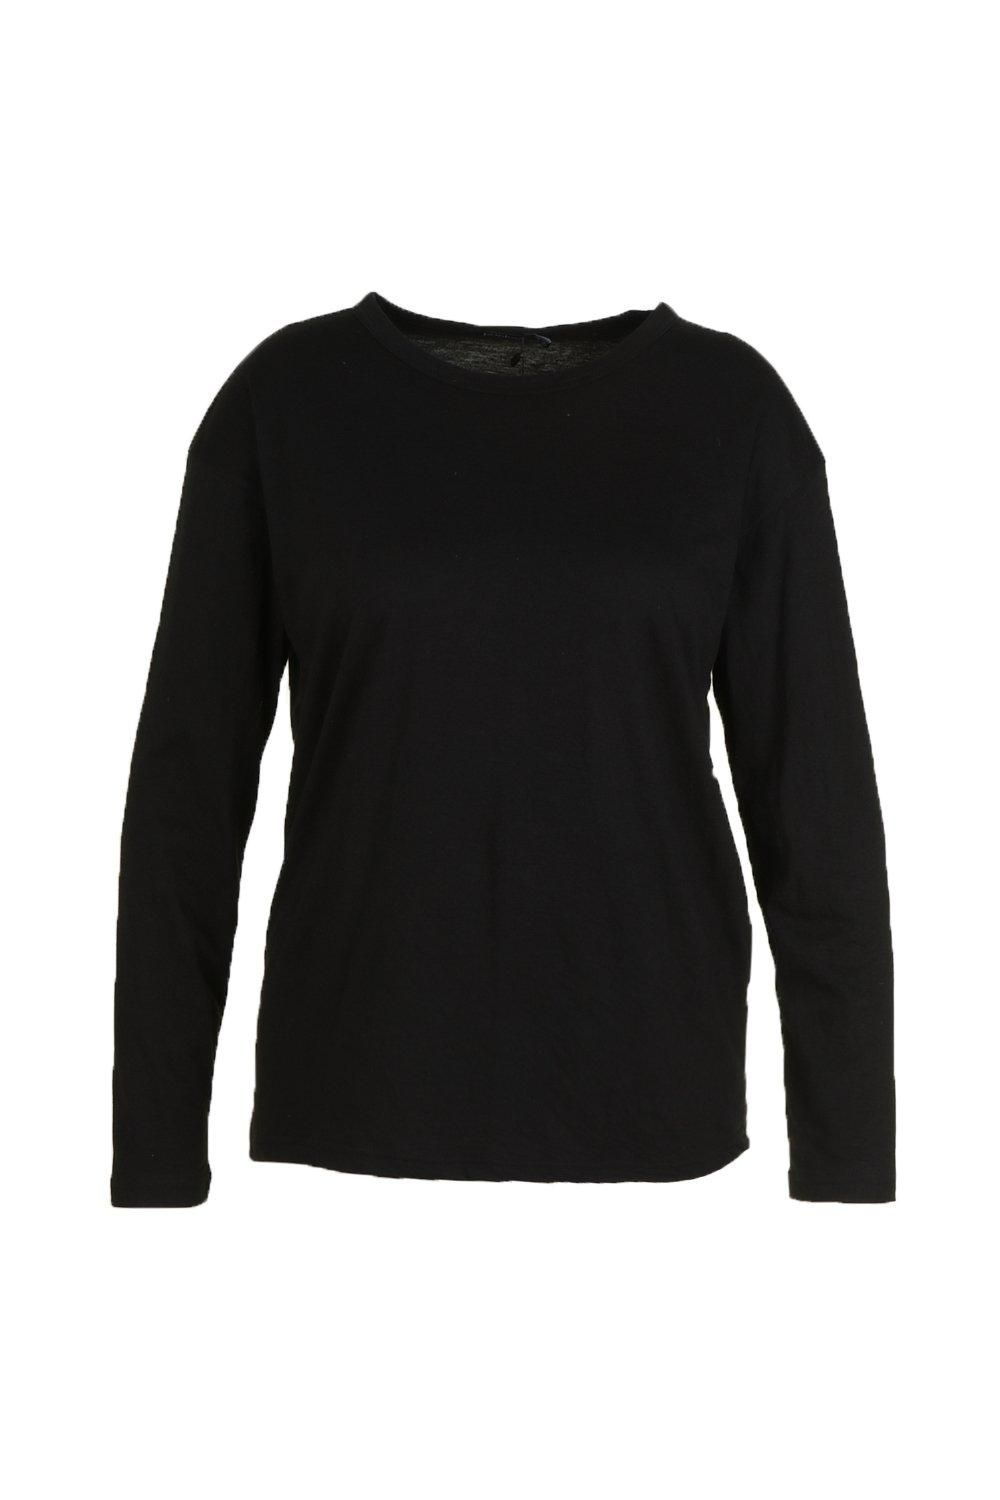 Basic Crew Neck black Plus Shirt Long Sleeve T Bxzdfwpq